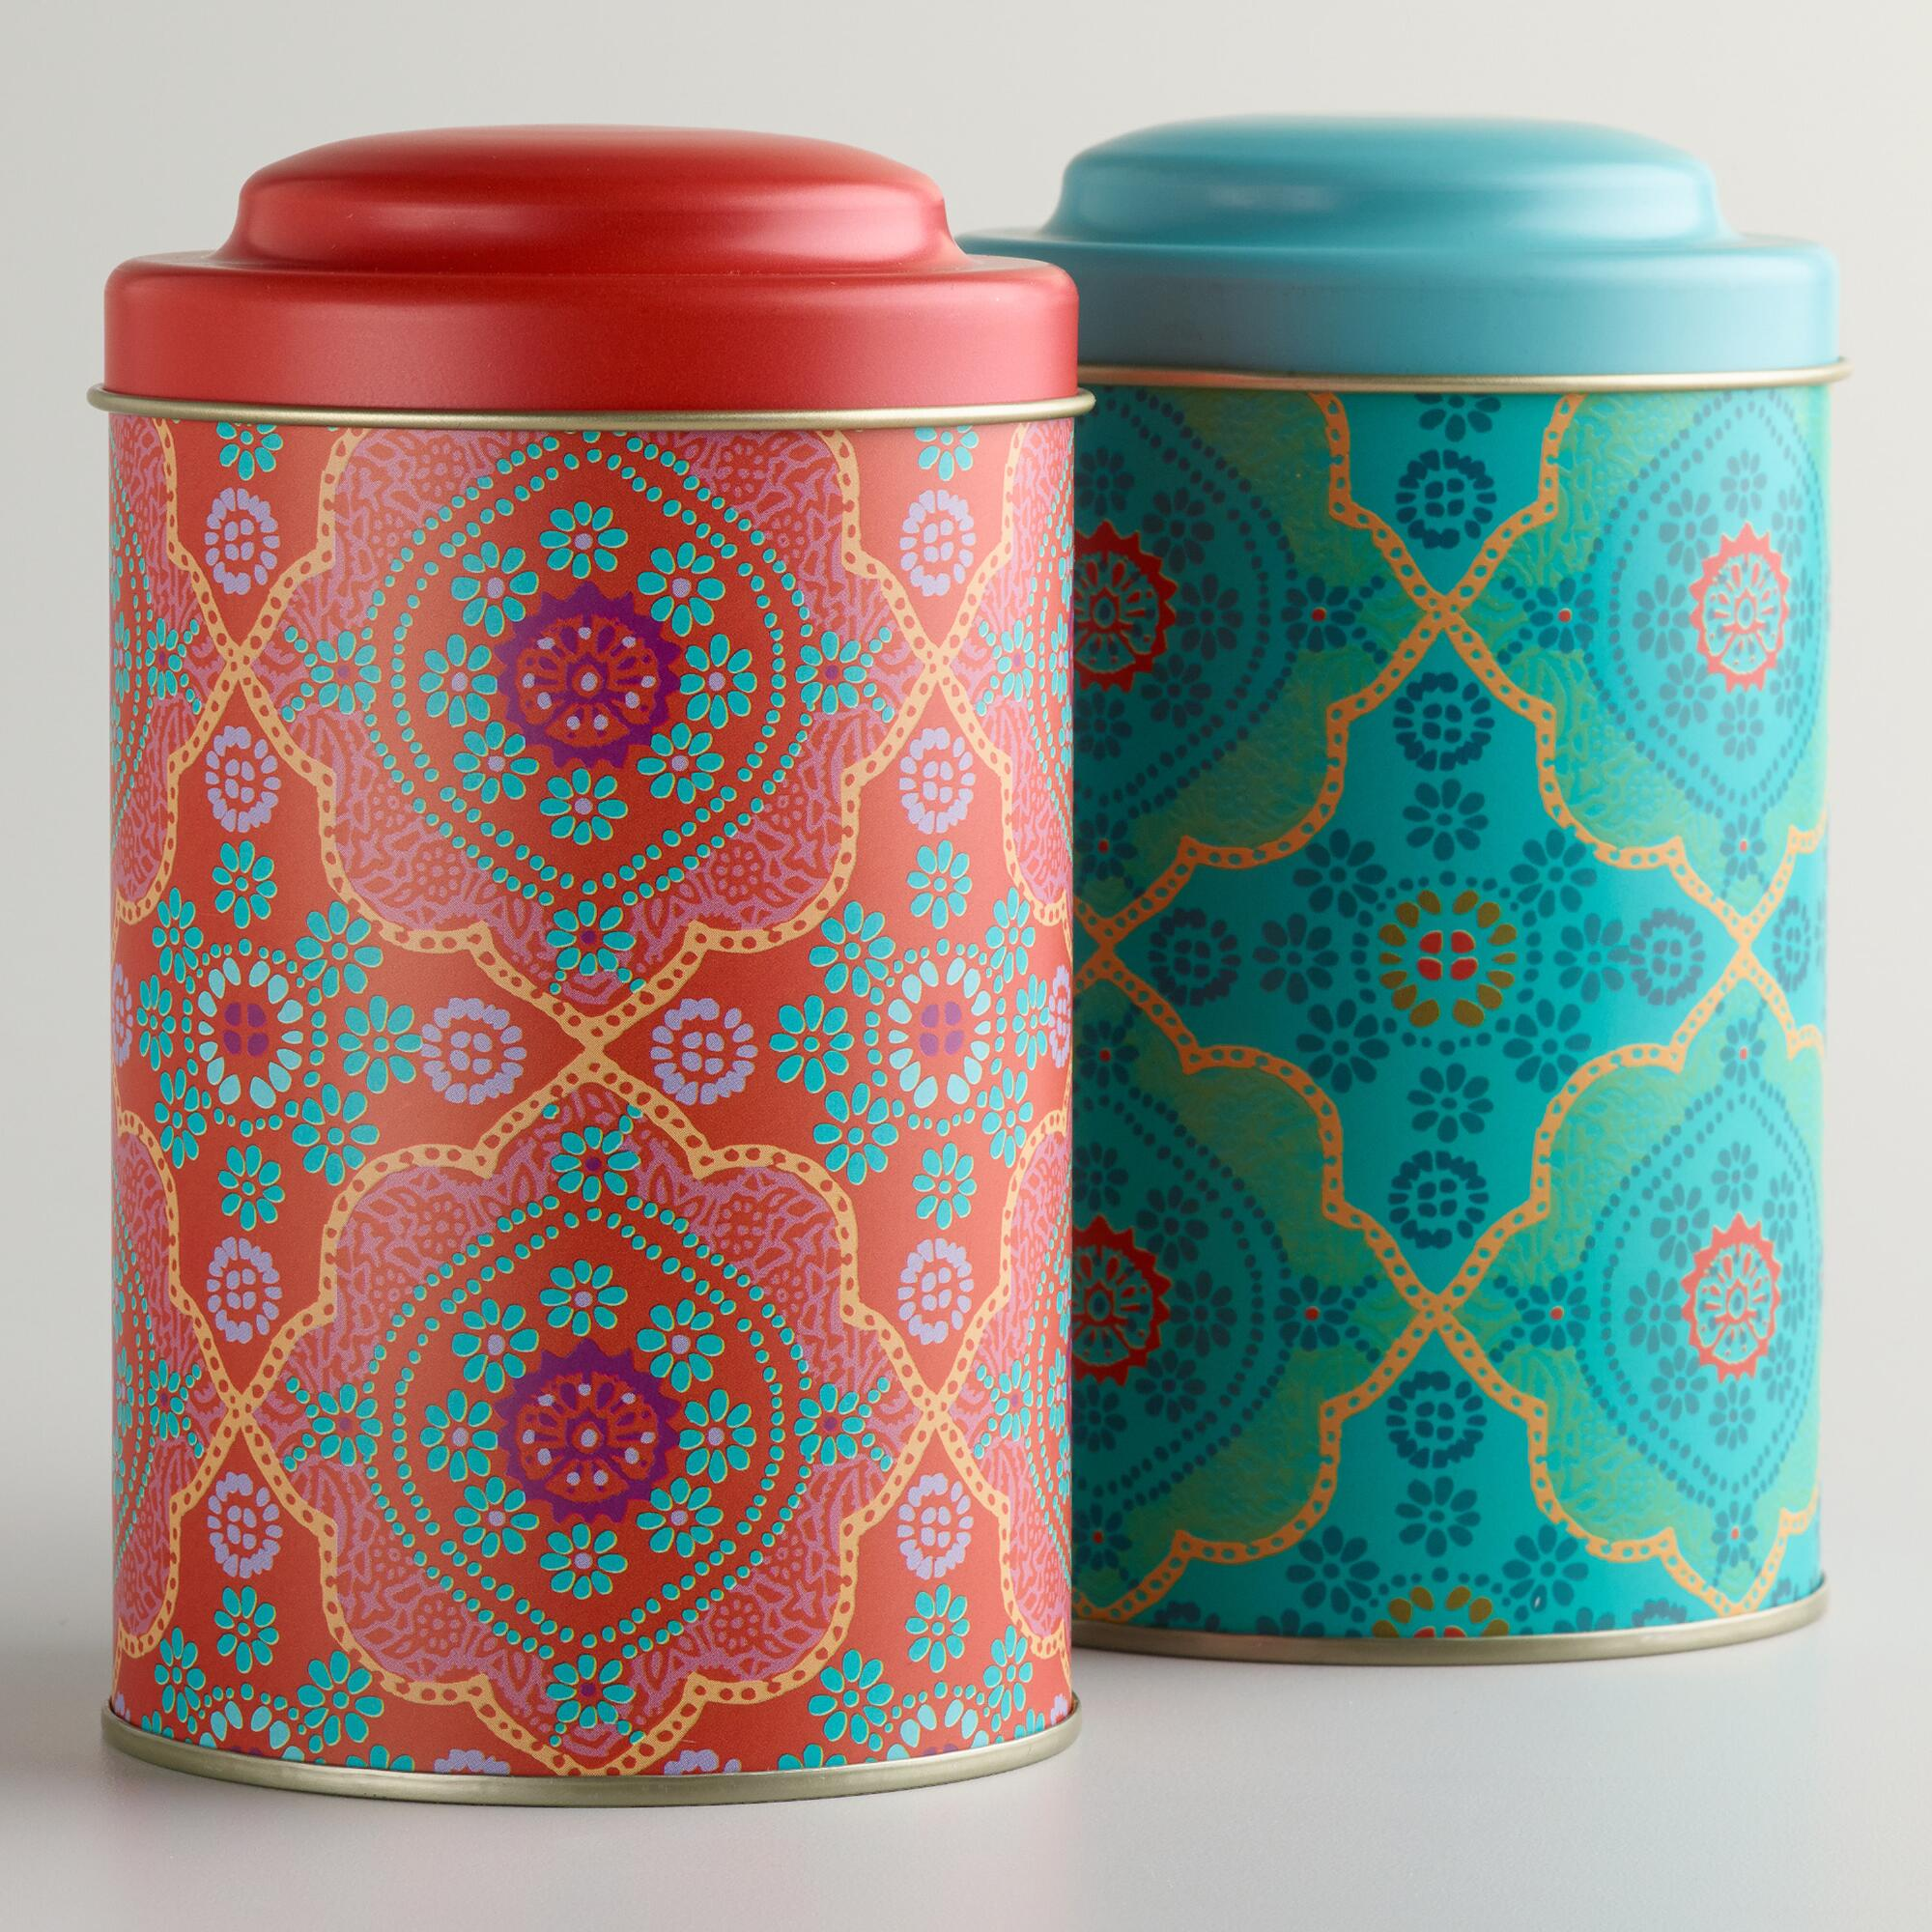 Tins Container Rectangular Hinged Containers with Lock ... |Tin Storage Containers